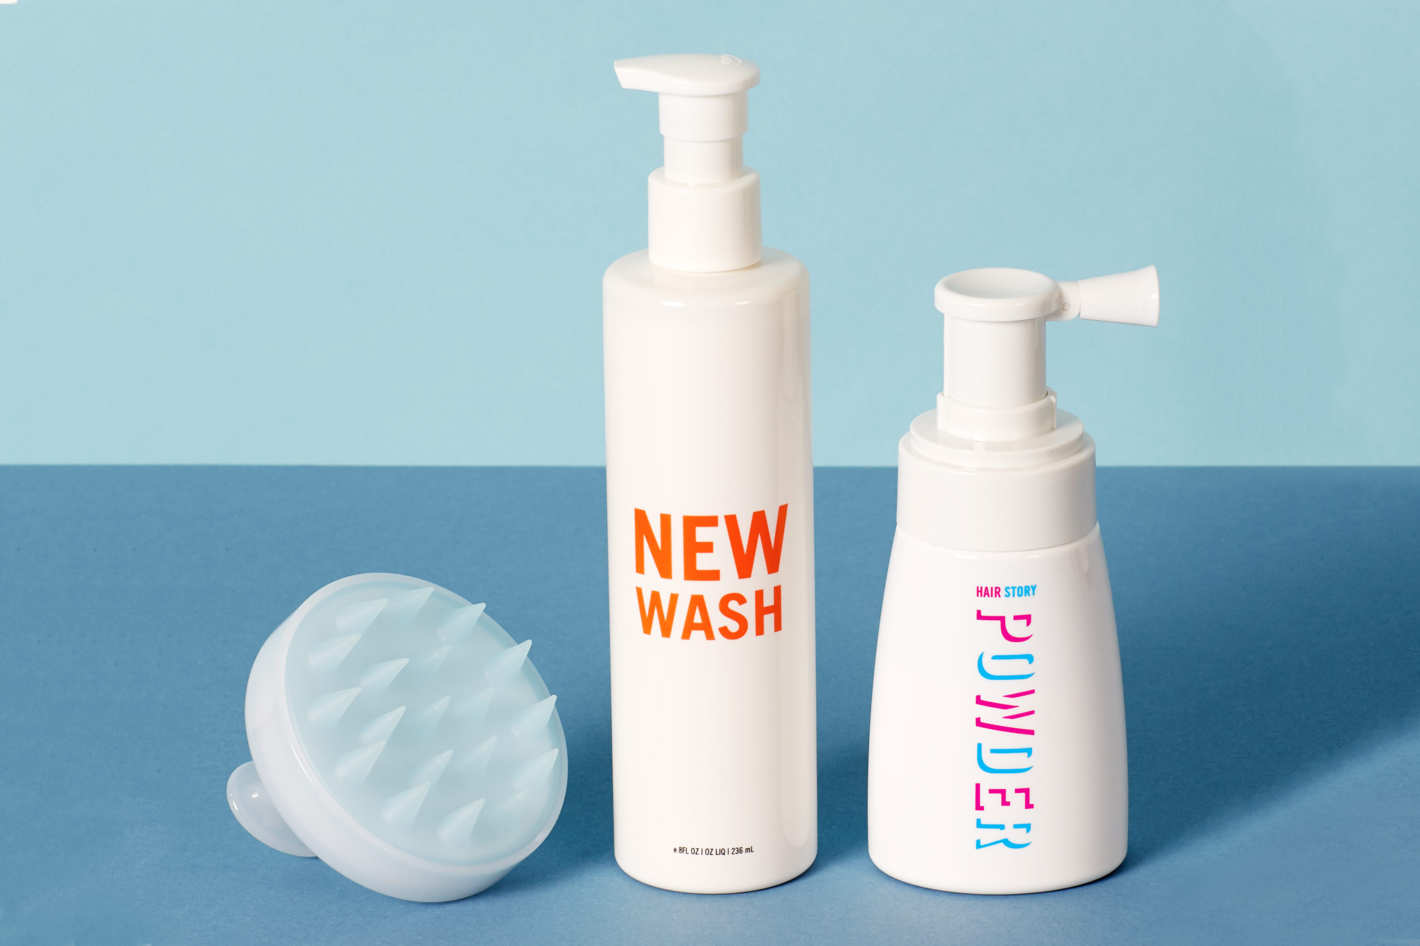 Hairstory New Wash Starter Kit